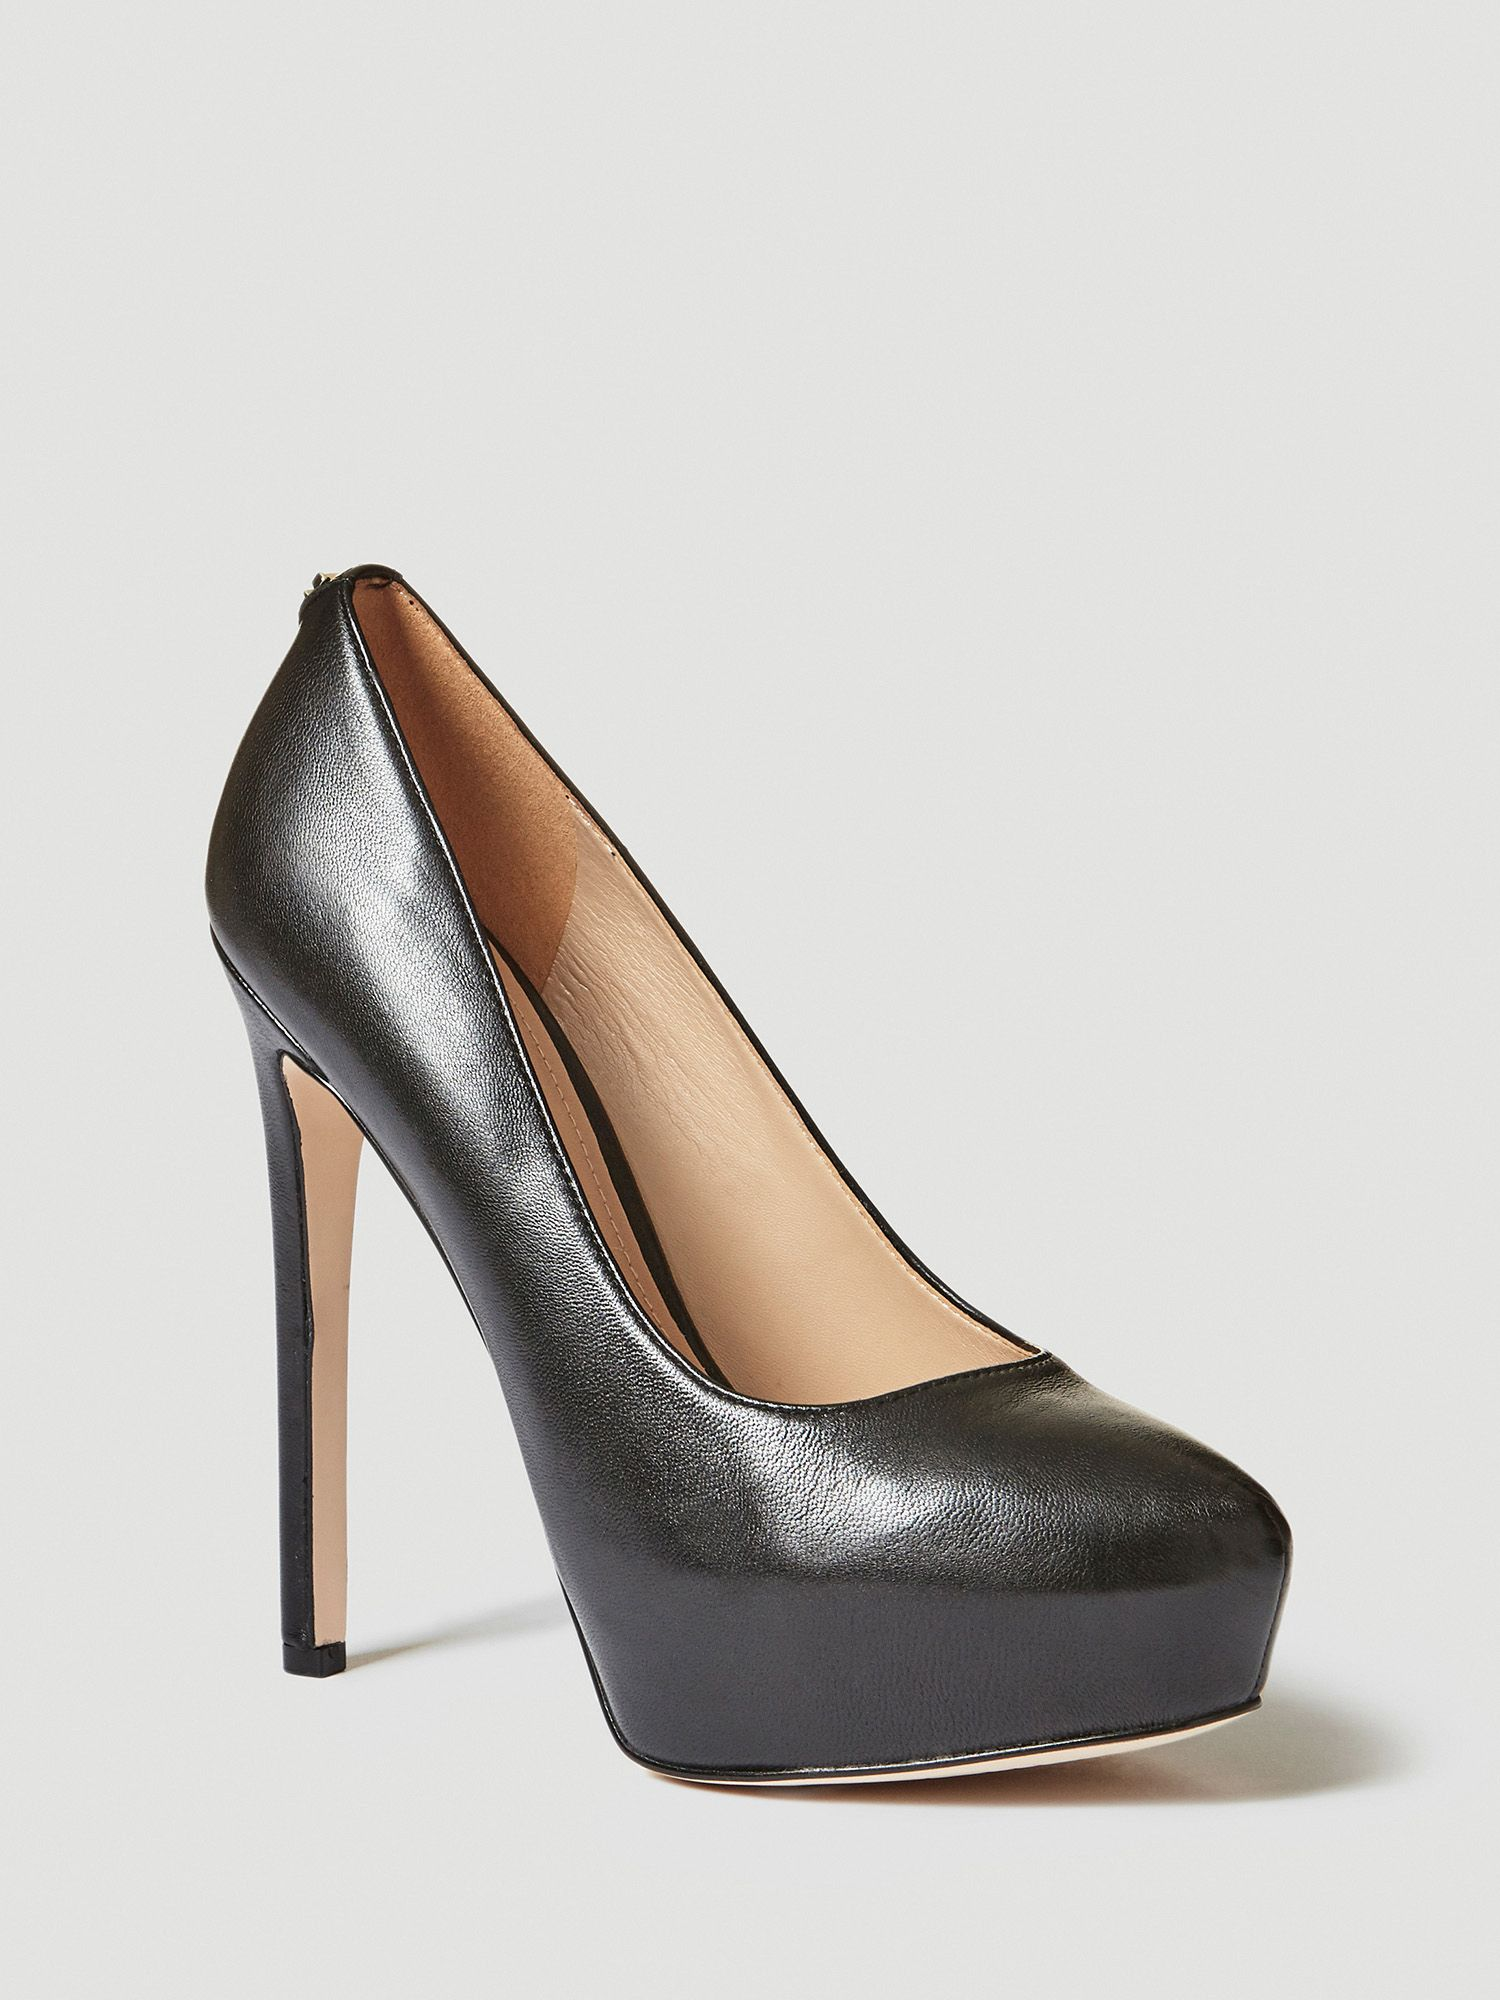 Guess Pumps Damenmode/Schuhe/Pumps/Plateaupumps